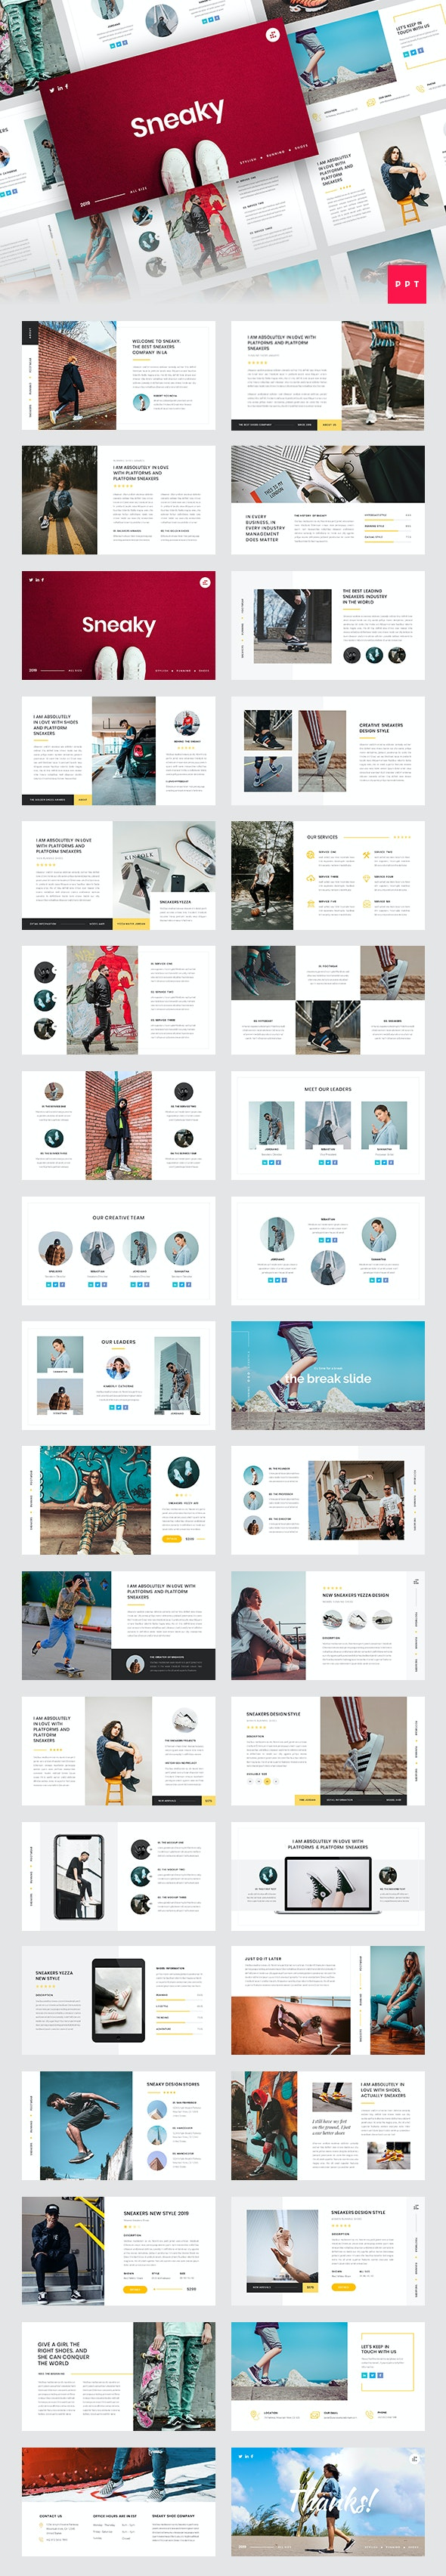 Sneaky - Sneakers PowerPoint Template - Creative PowerPoint Templates